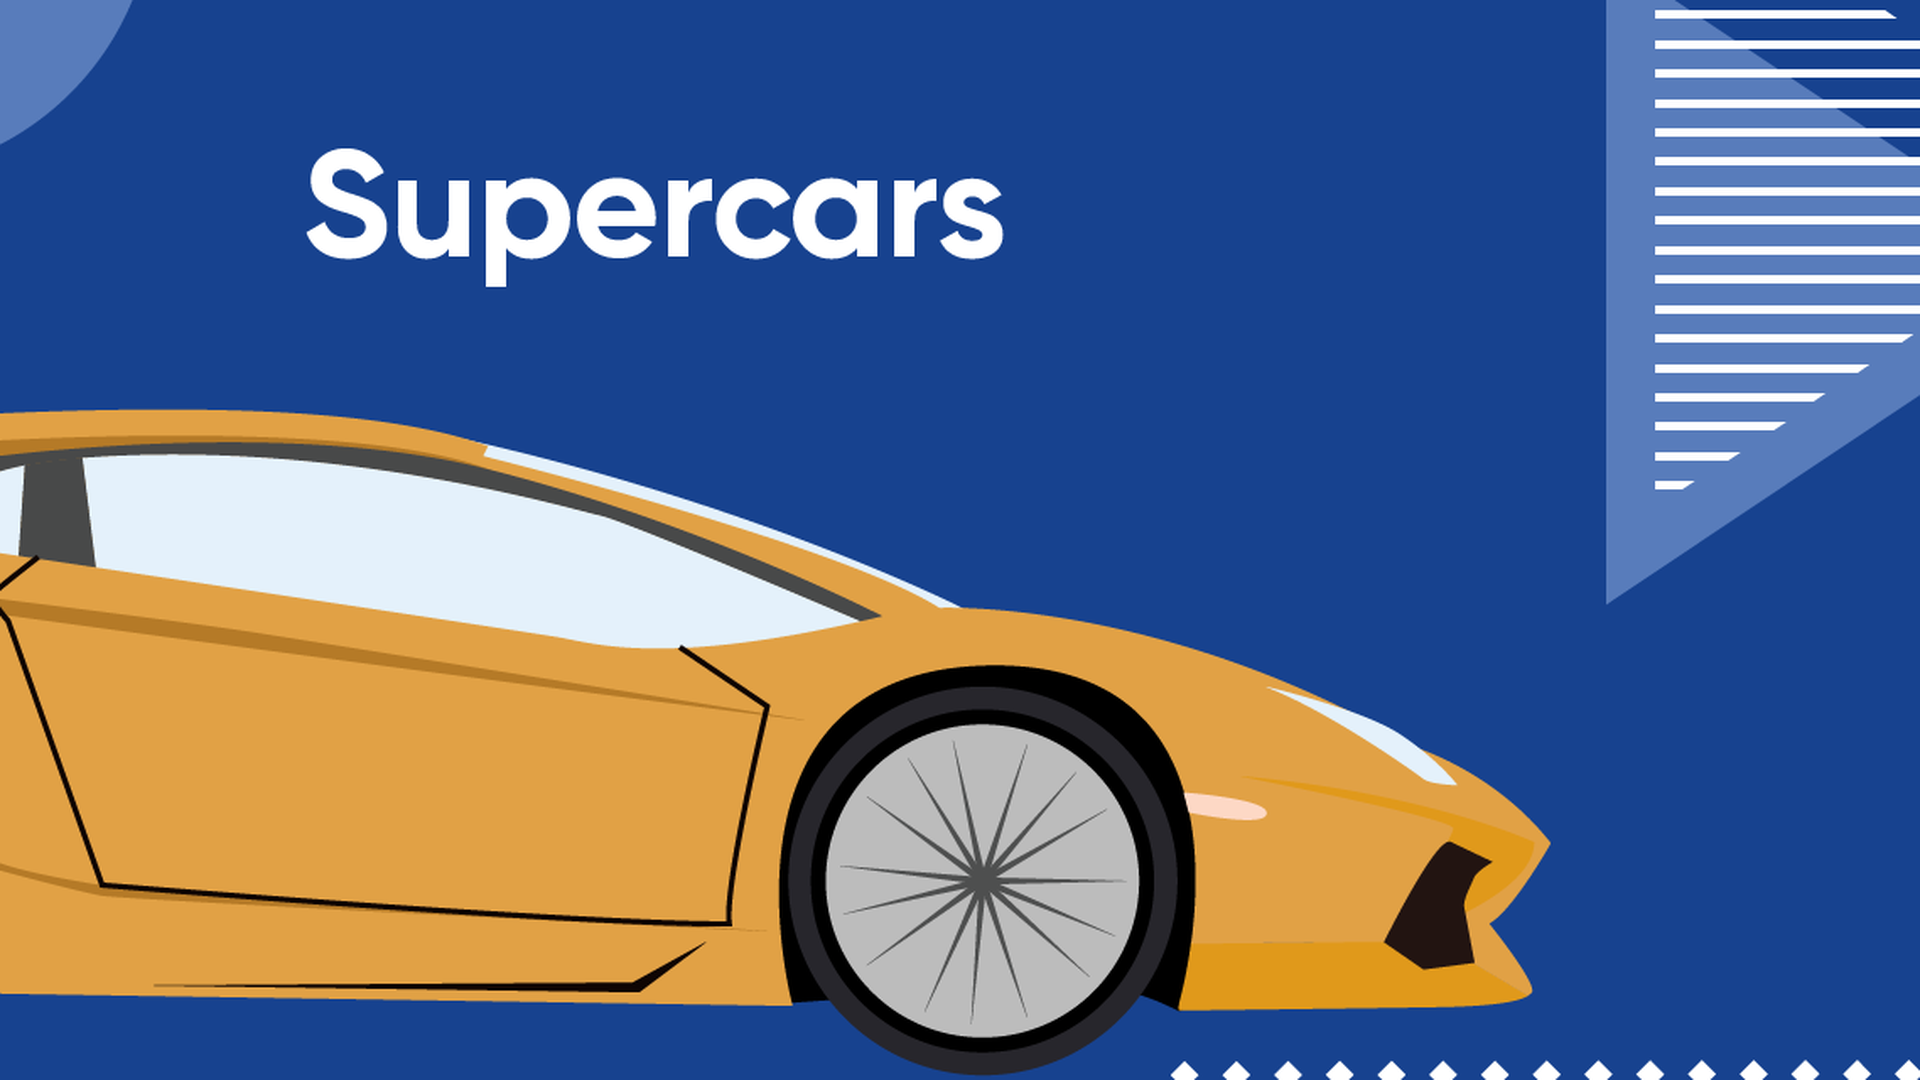 Featured Image of Class B - Supercars and Exotics